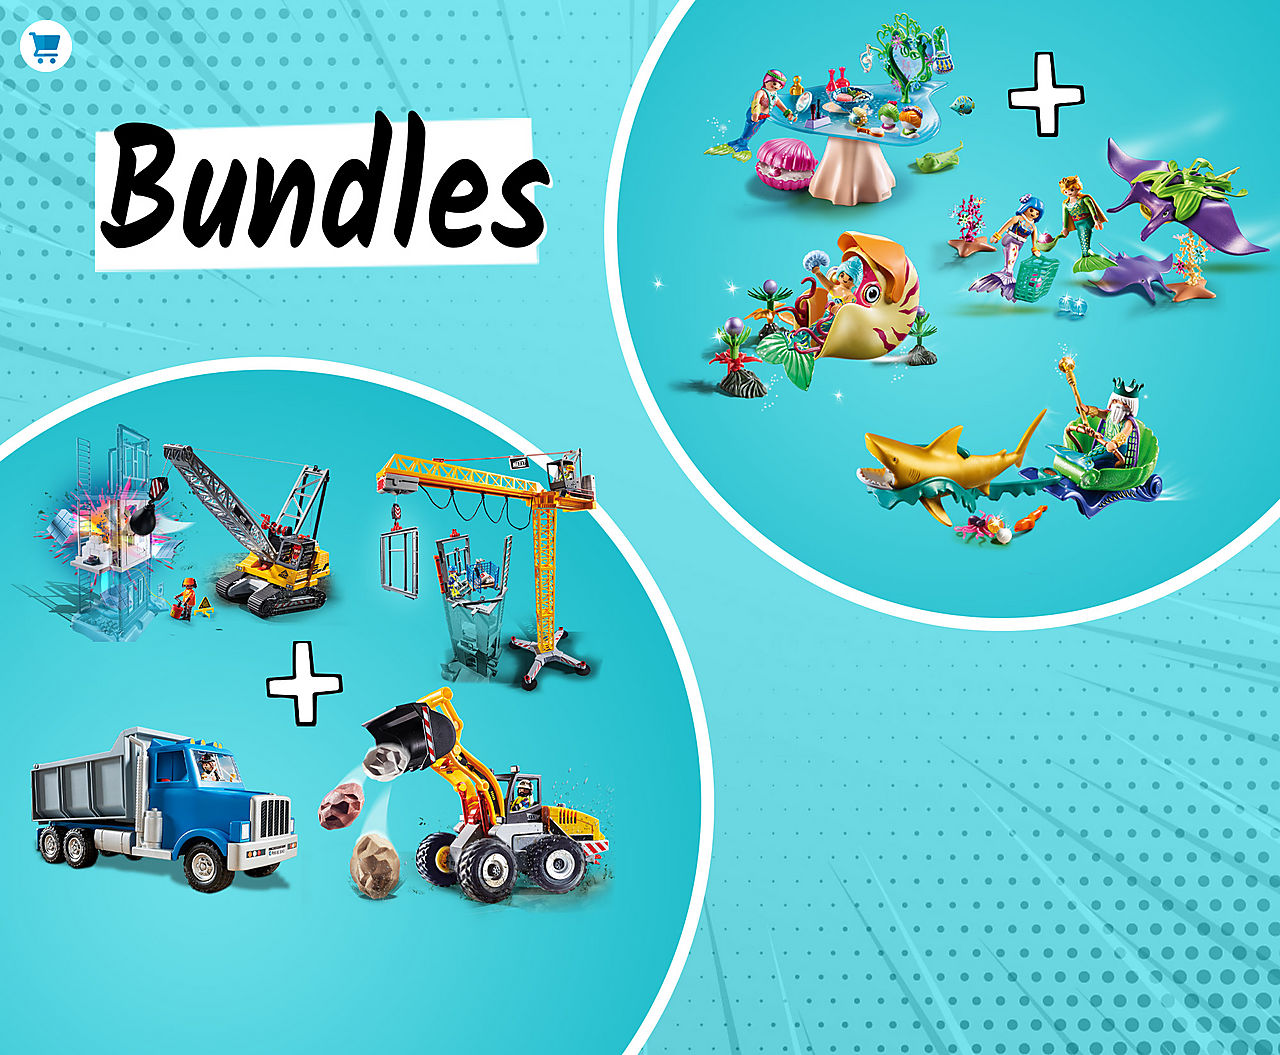 Discover and save on many bundles like the Mermaids Bundle or the Construction Bundle